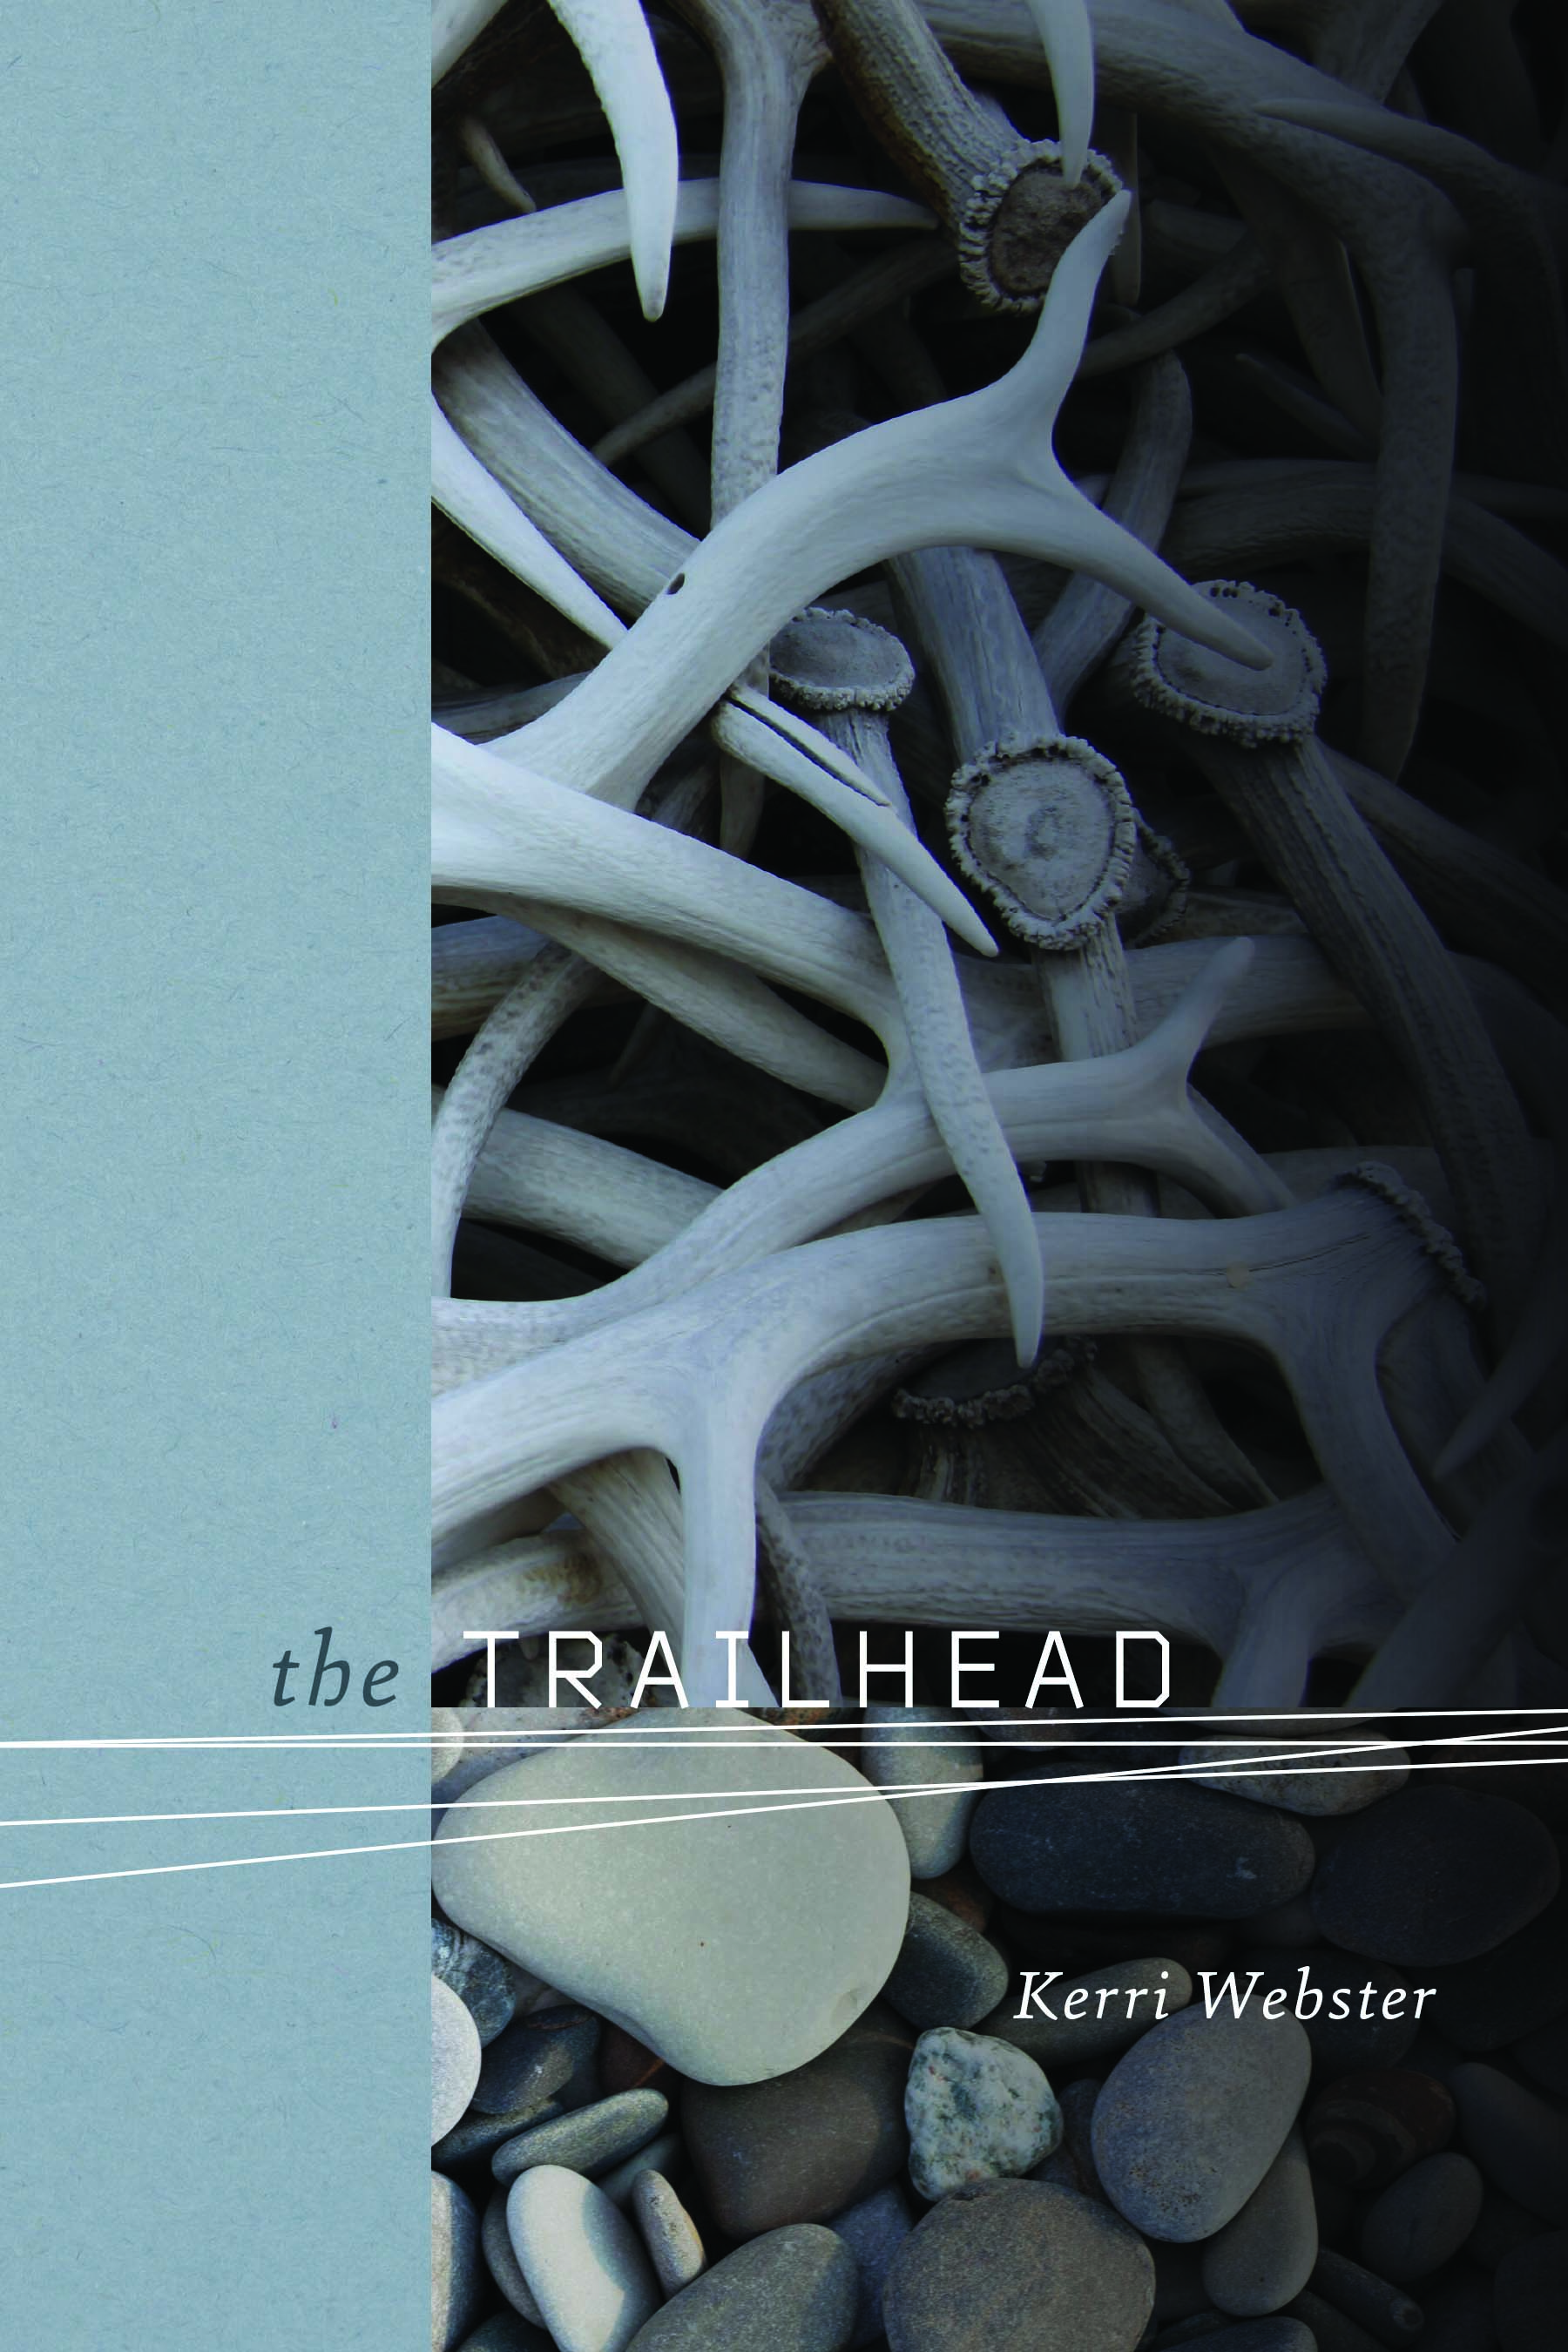 Book Cover for The Trailhead by Kerri Webster